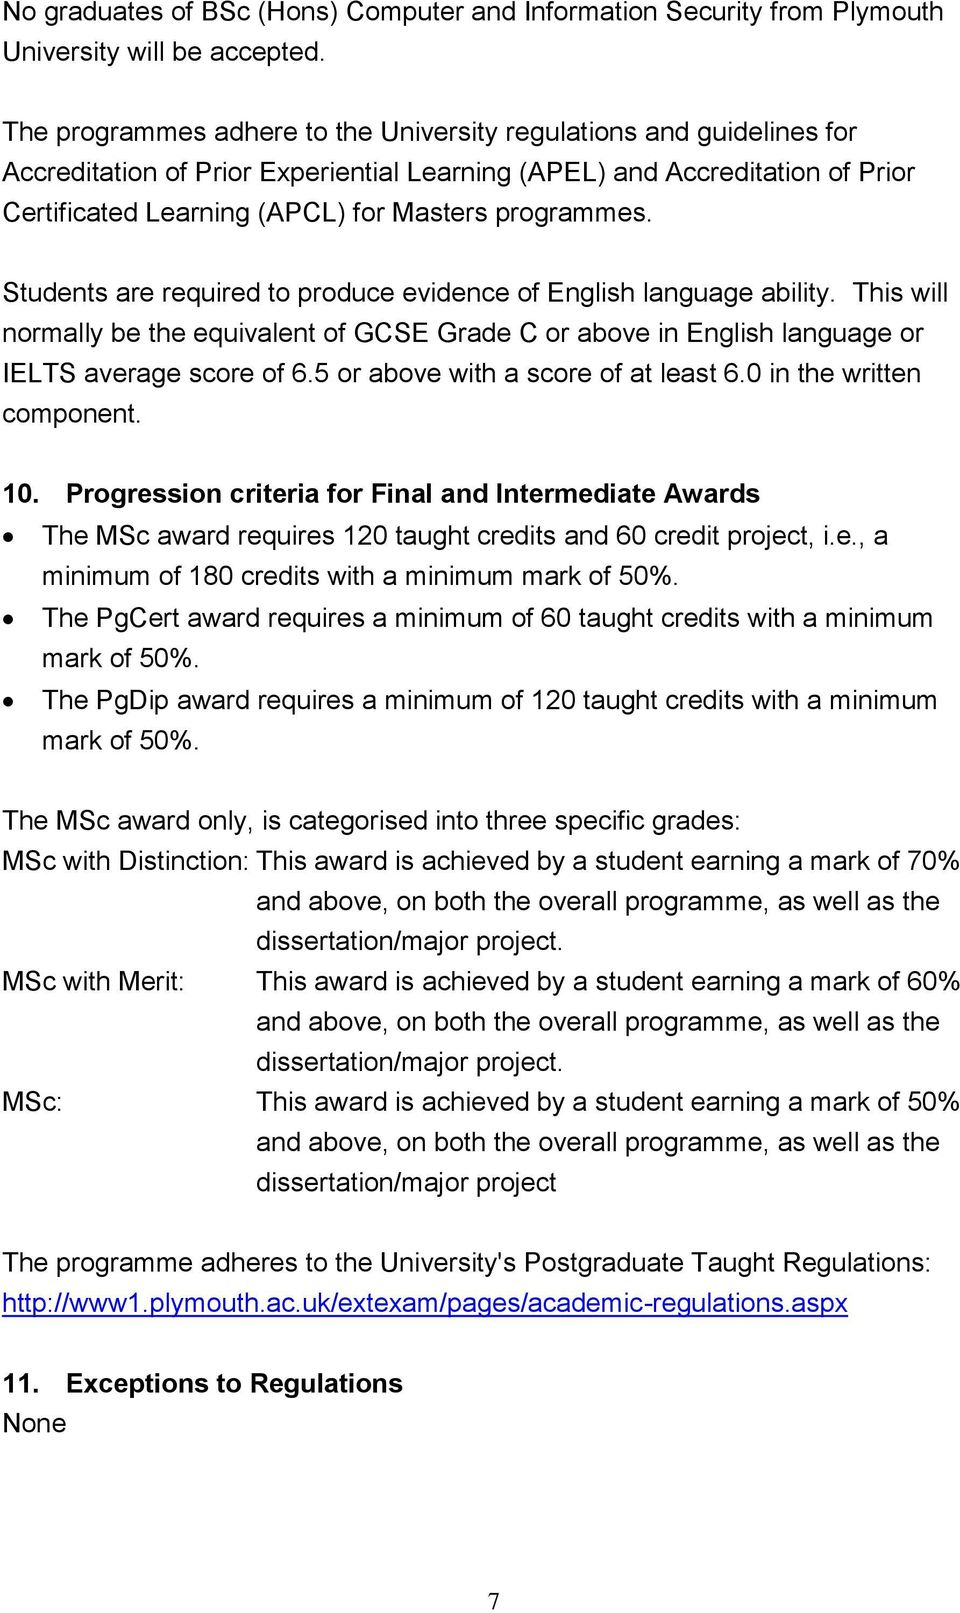 programmes. Students are required to produce evidence of English language ability. This will normally be the equivalent of GCSE Grade C or above in English language or IELTS average score of 6.